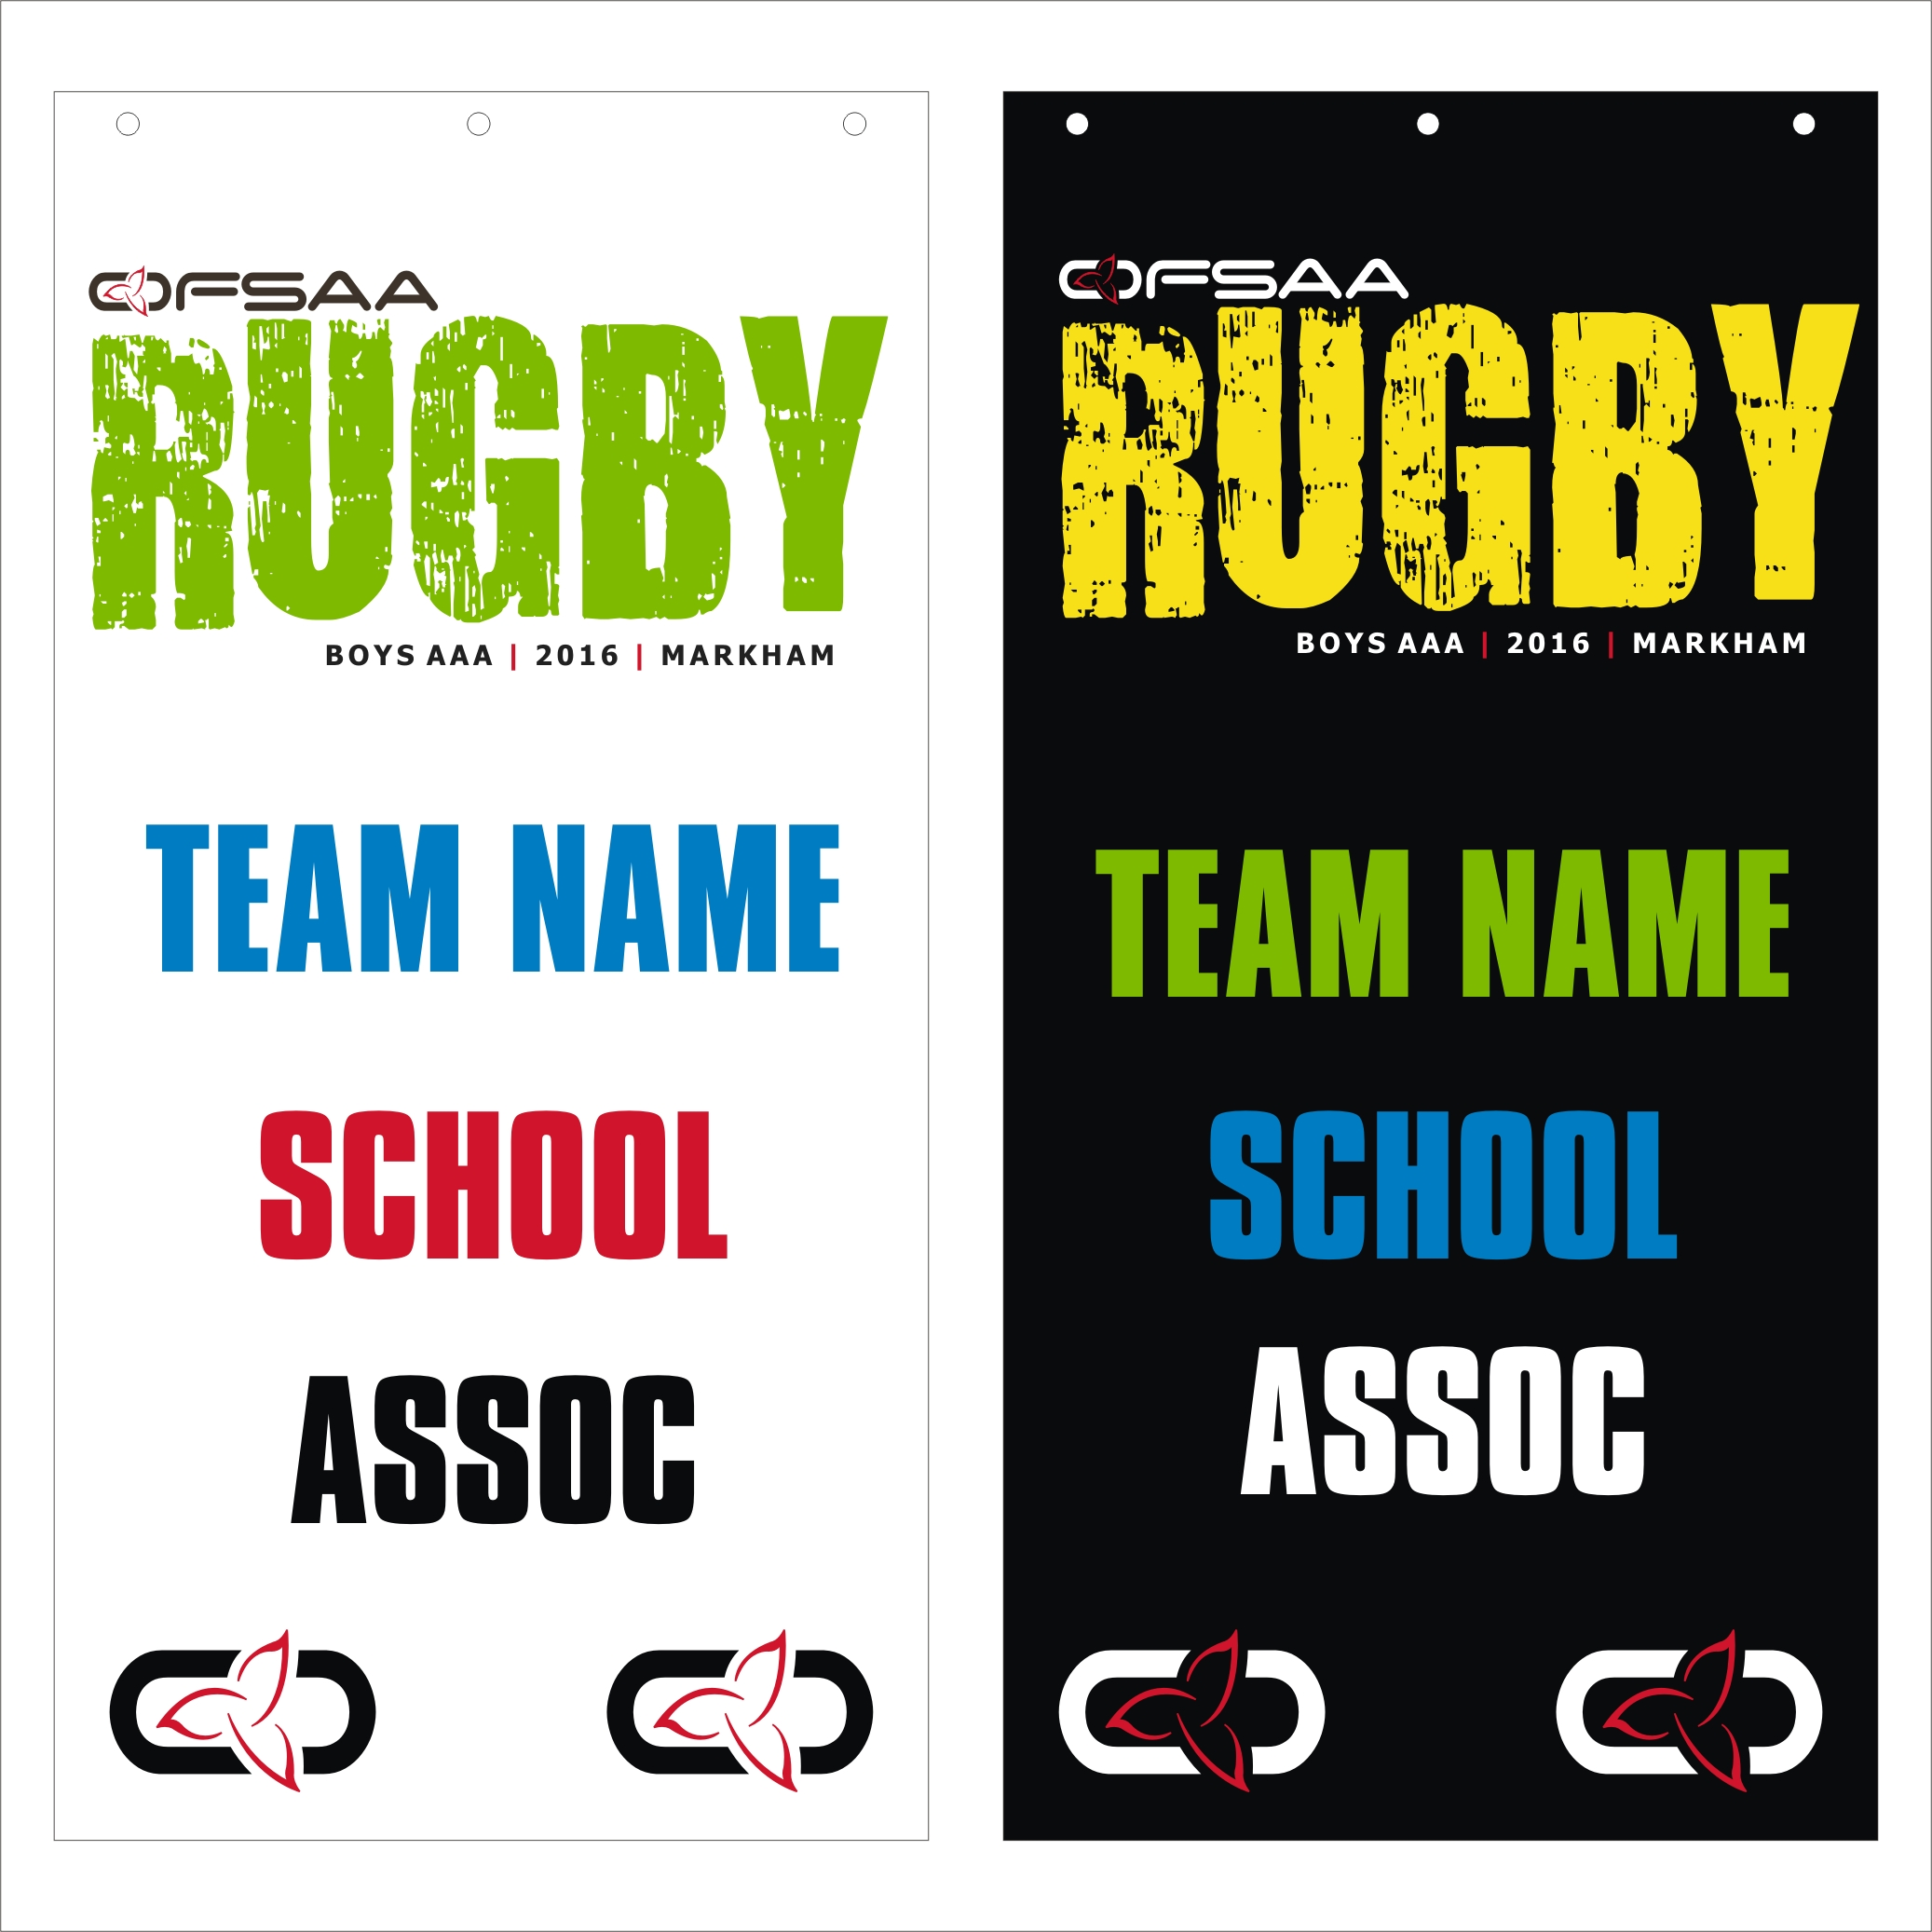 2016 Boys AAA Rugby banner small.jpg